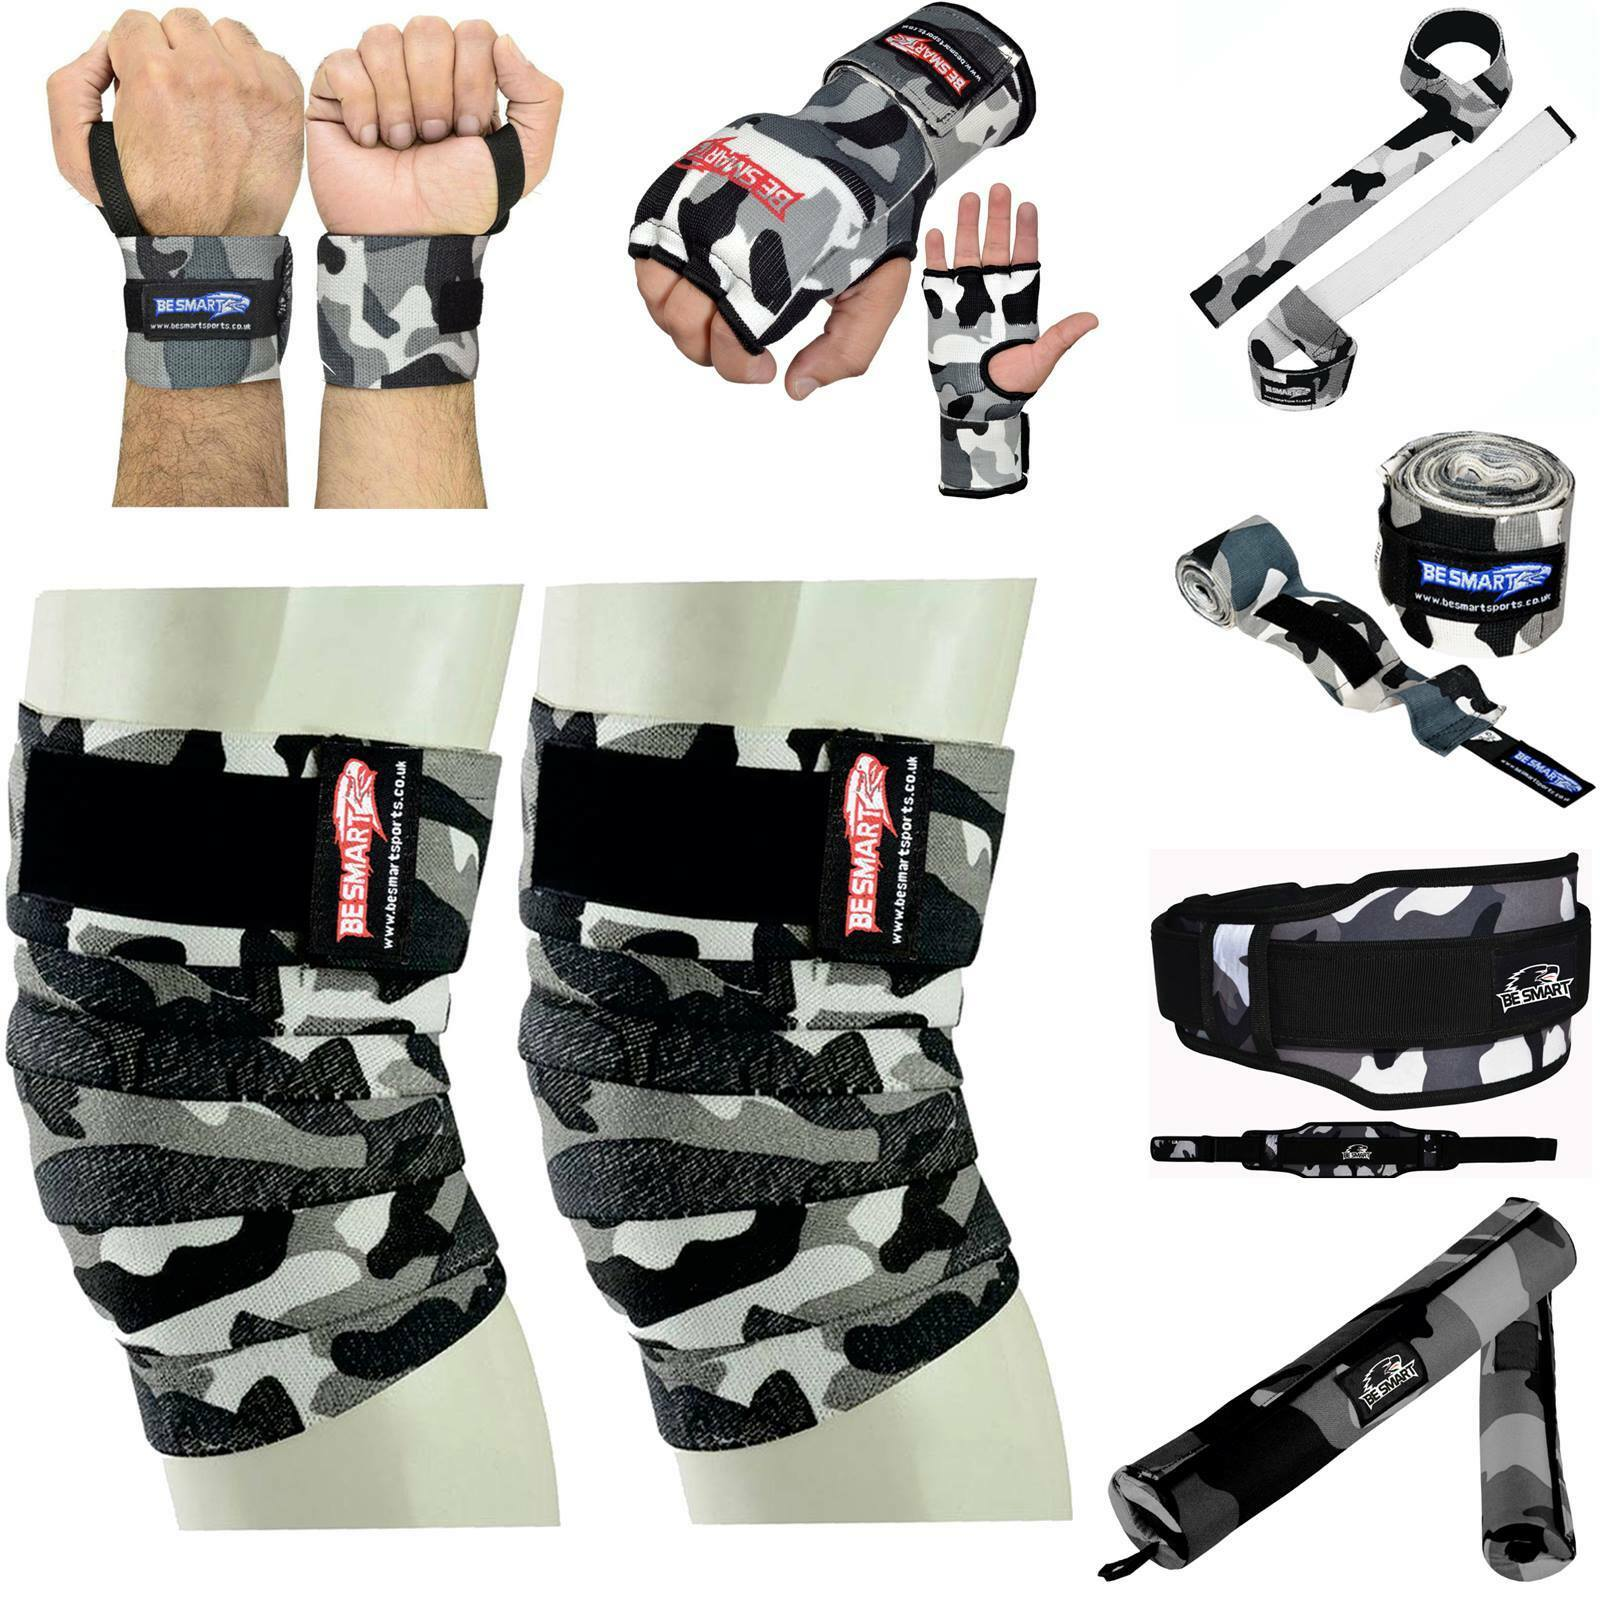 BE SMART Knee Wraps Peso Sollevamento Cinghie Cinghia Barbell polso Wraps energialifting